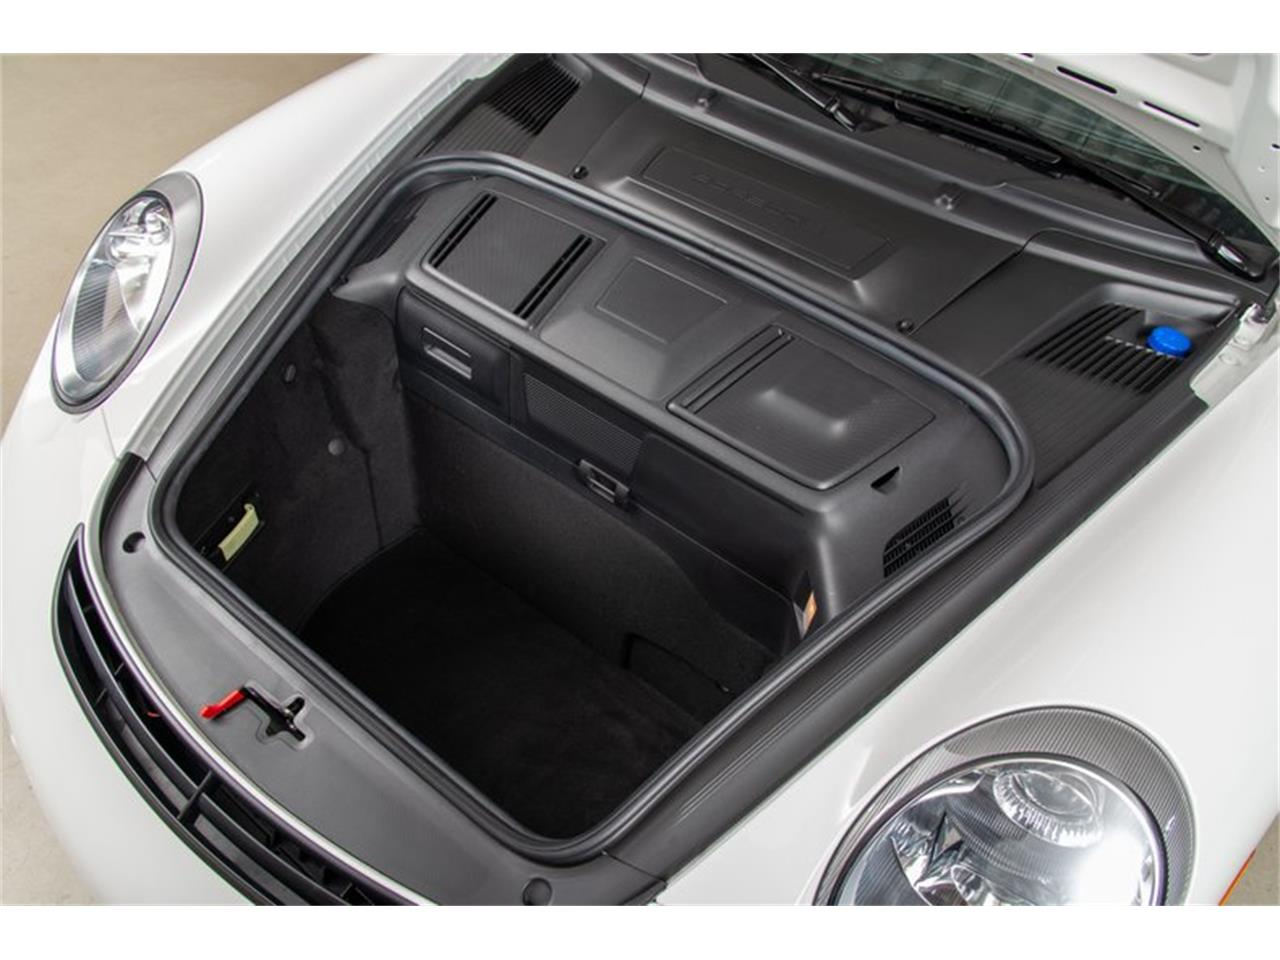 Large Picture of 2007 Porsche 911 located in California Auction Vehicle - QTBQ